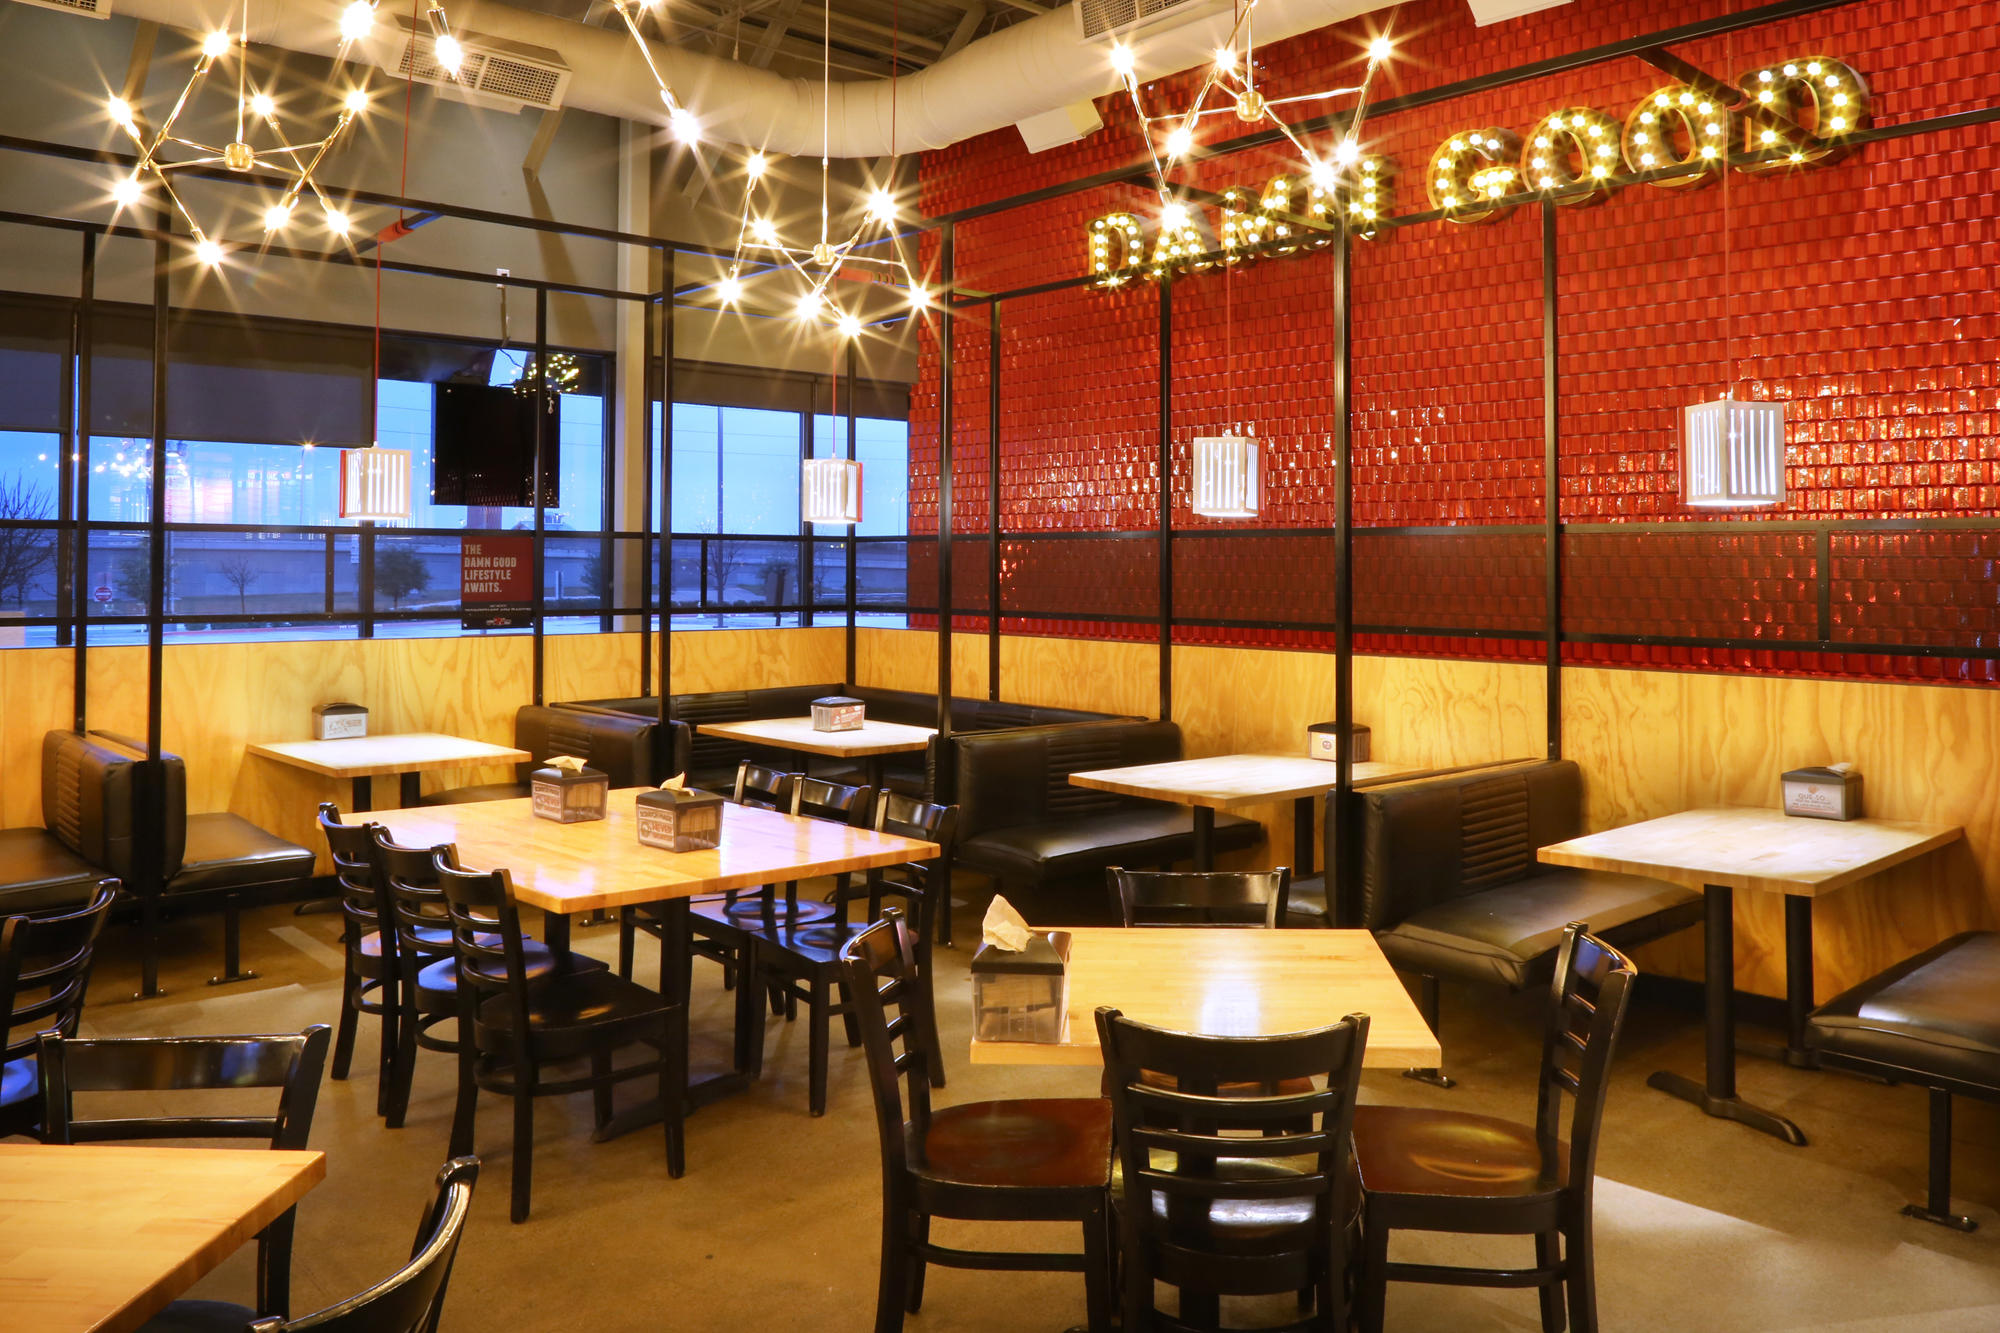 Torchy's Tacos image 3